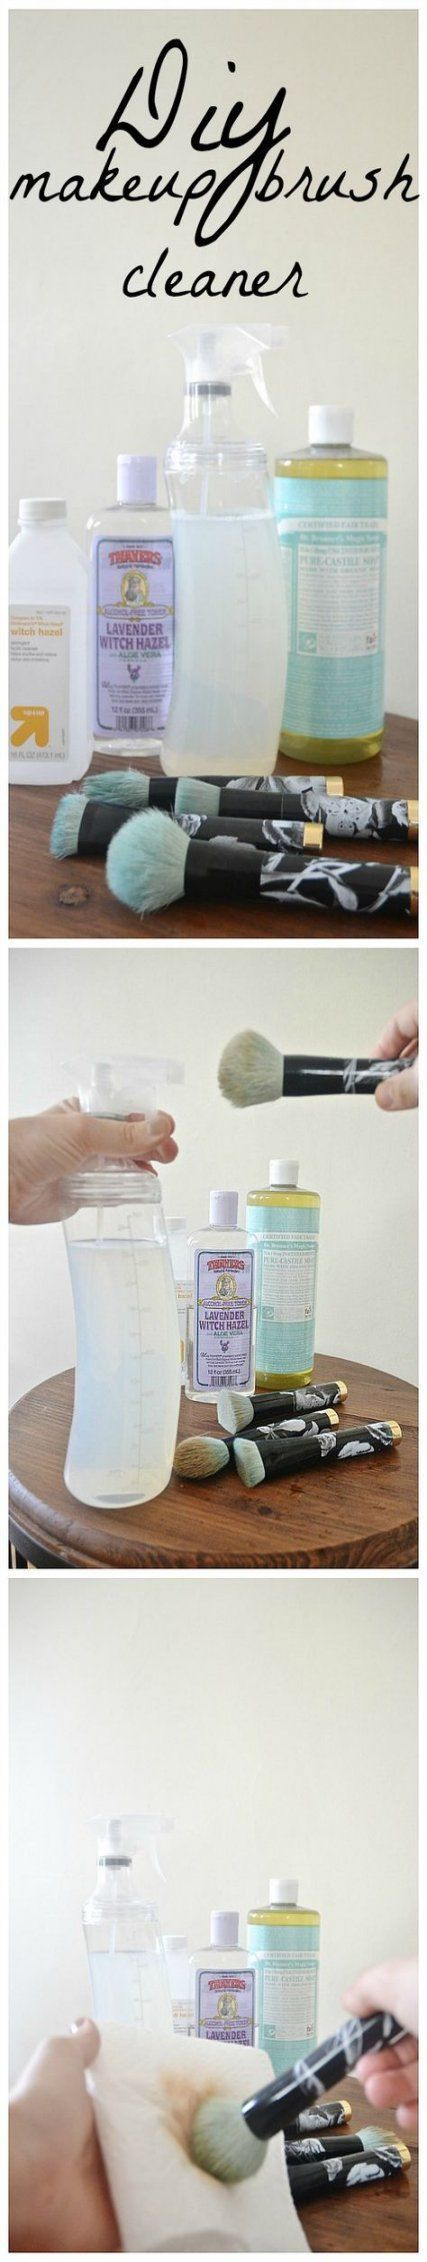 Diy makeup brush cleaner spray products 47+ Ideas for 2019